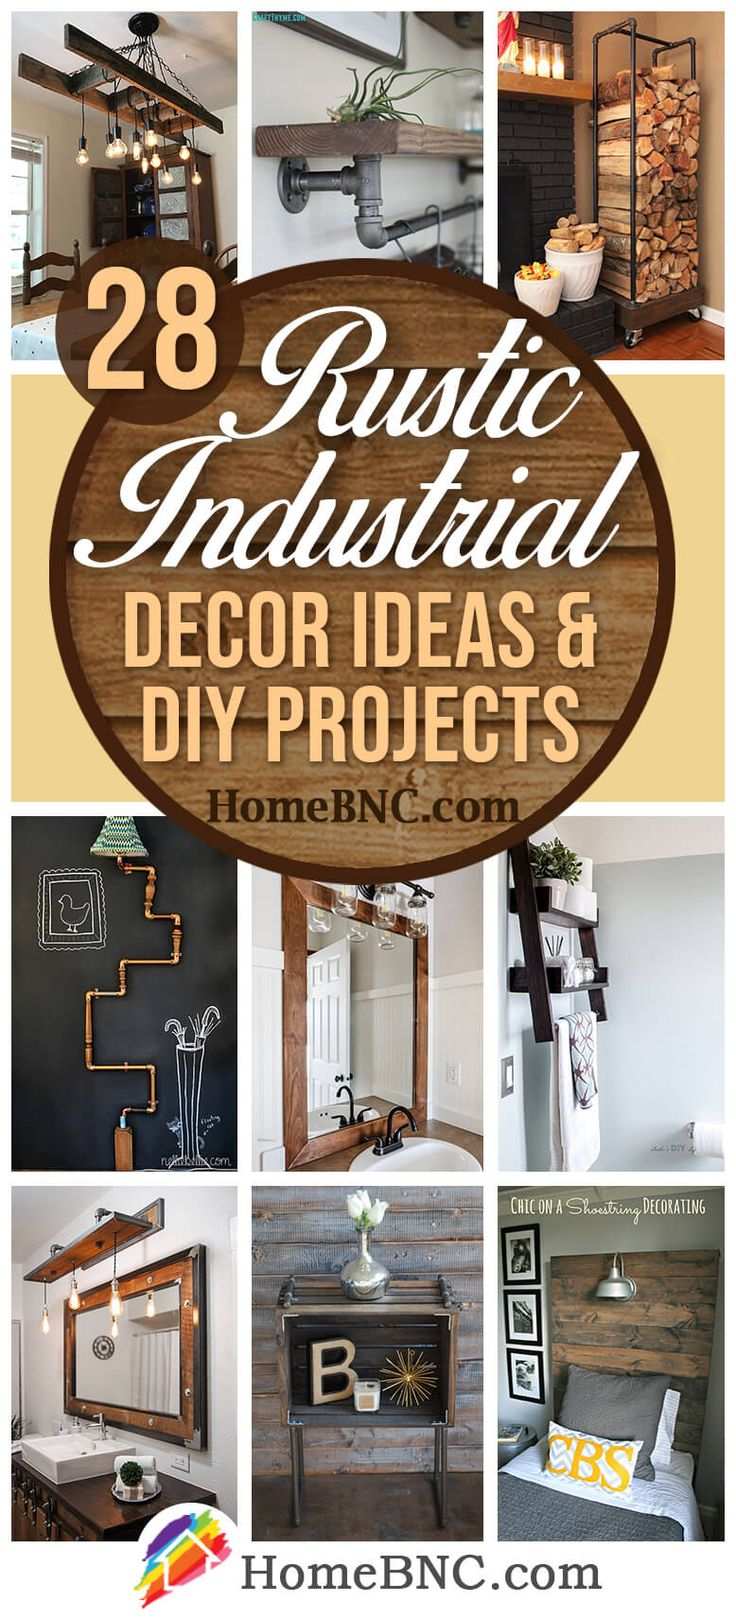 28 Best DIY Rustic Industrial Decor Ideas and Designs for